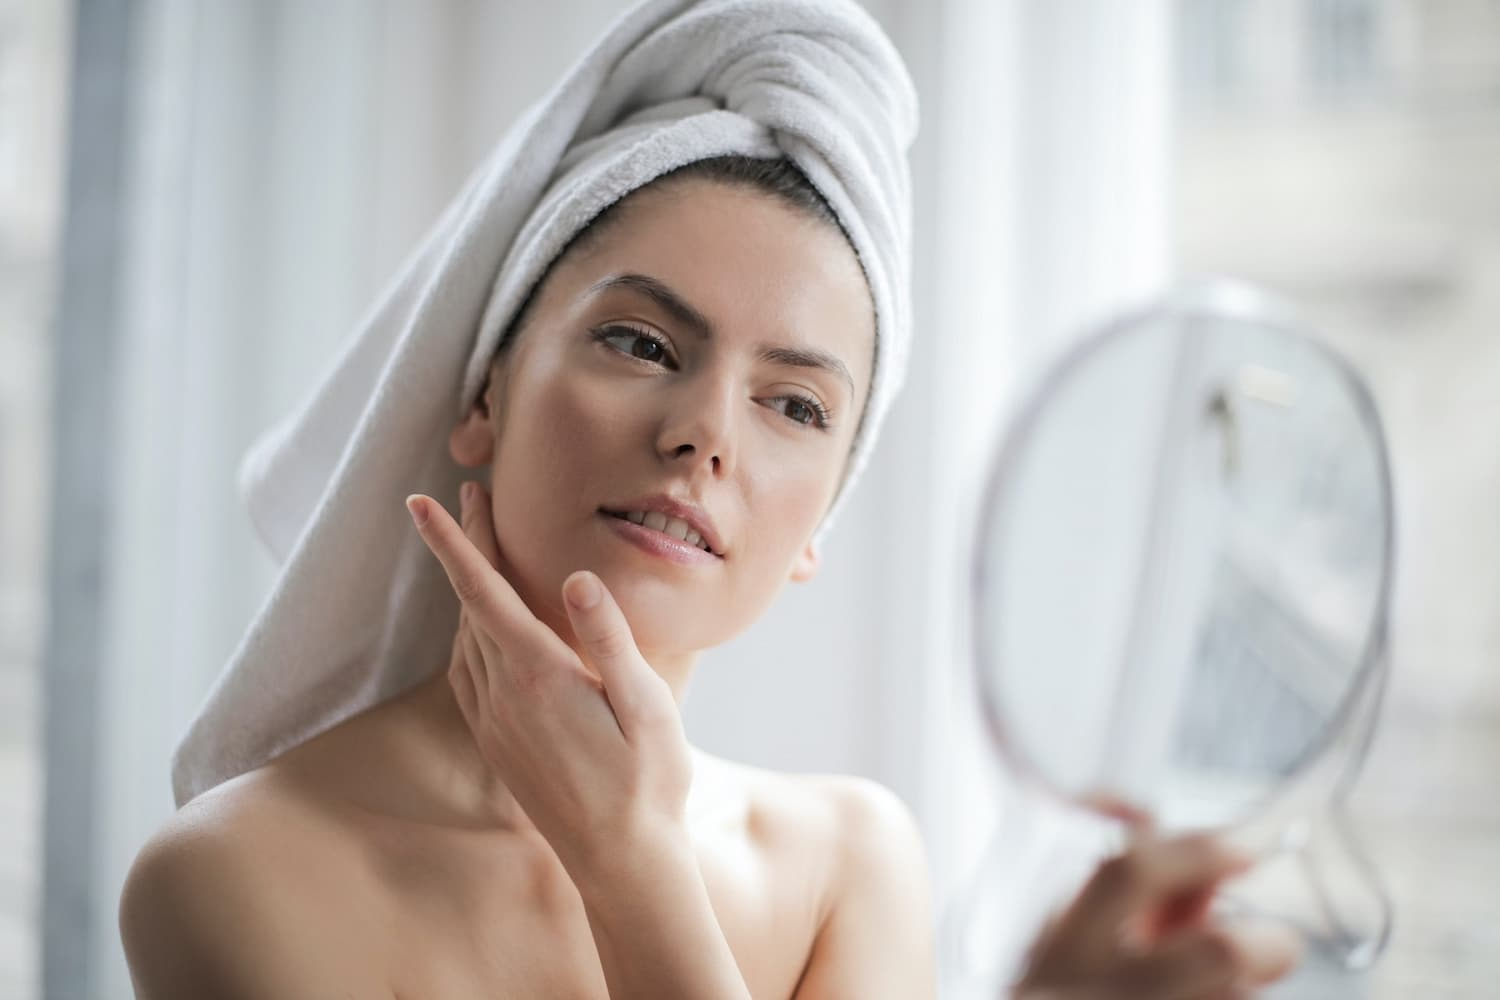 Skincare and treatments for common skin conditions